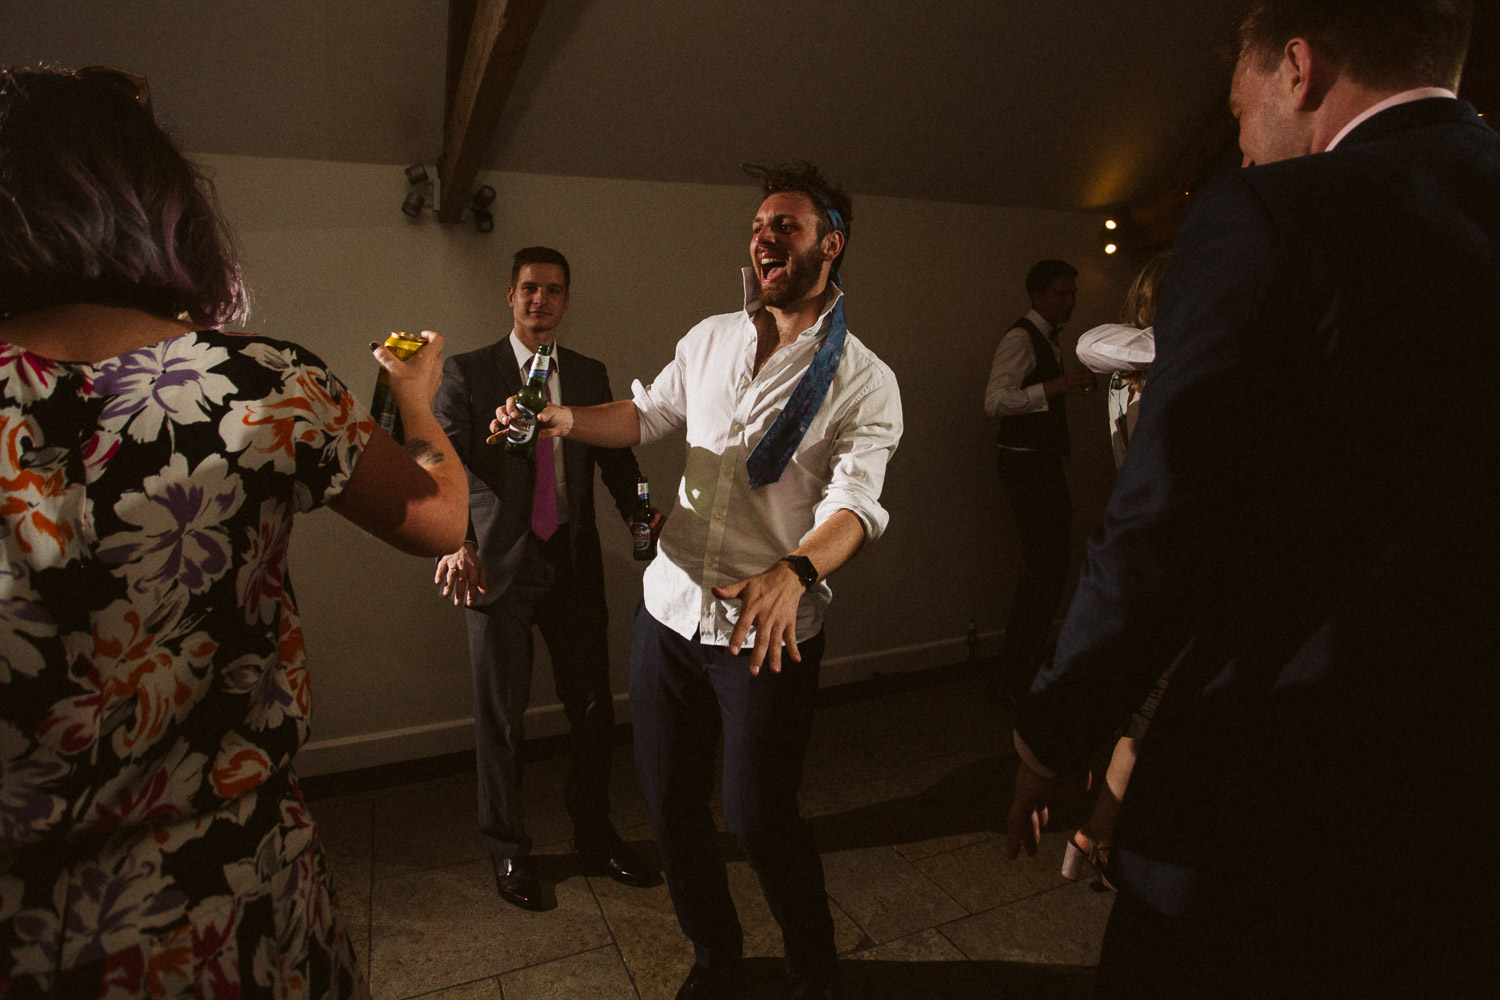 the brides brother dancing with a tie on his head like Rambo